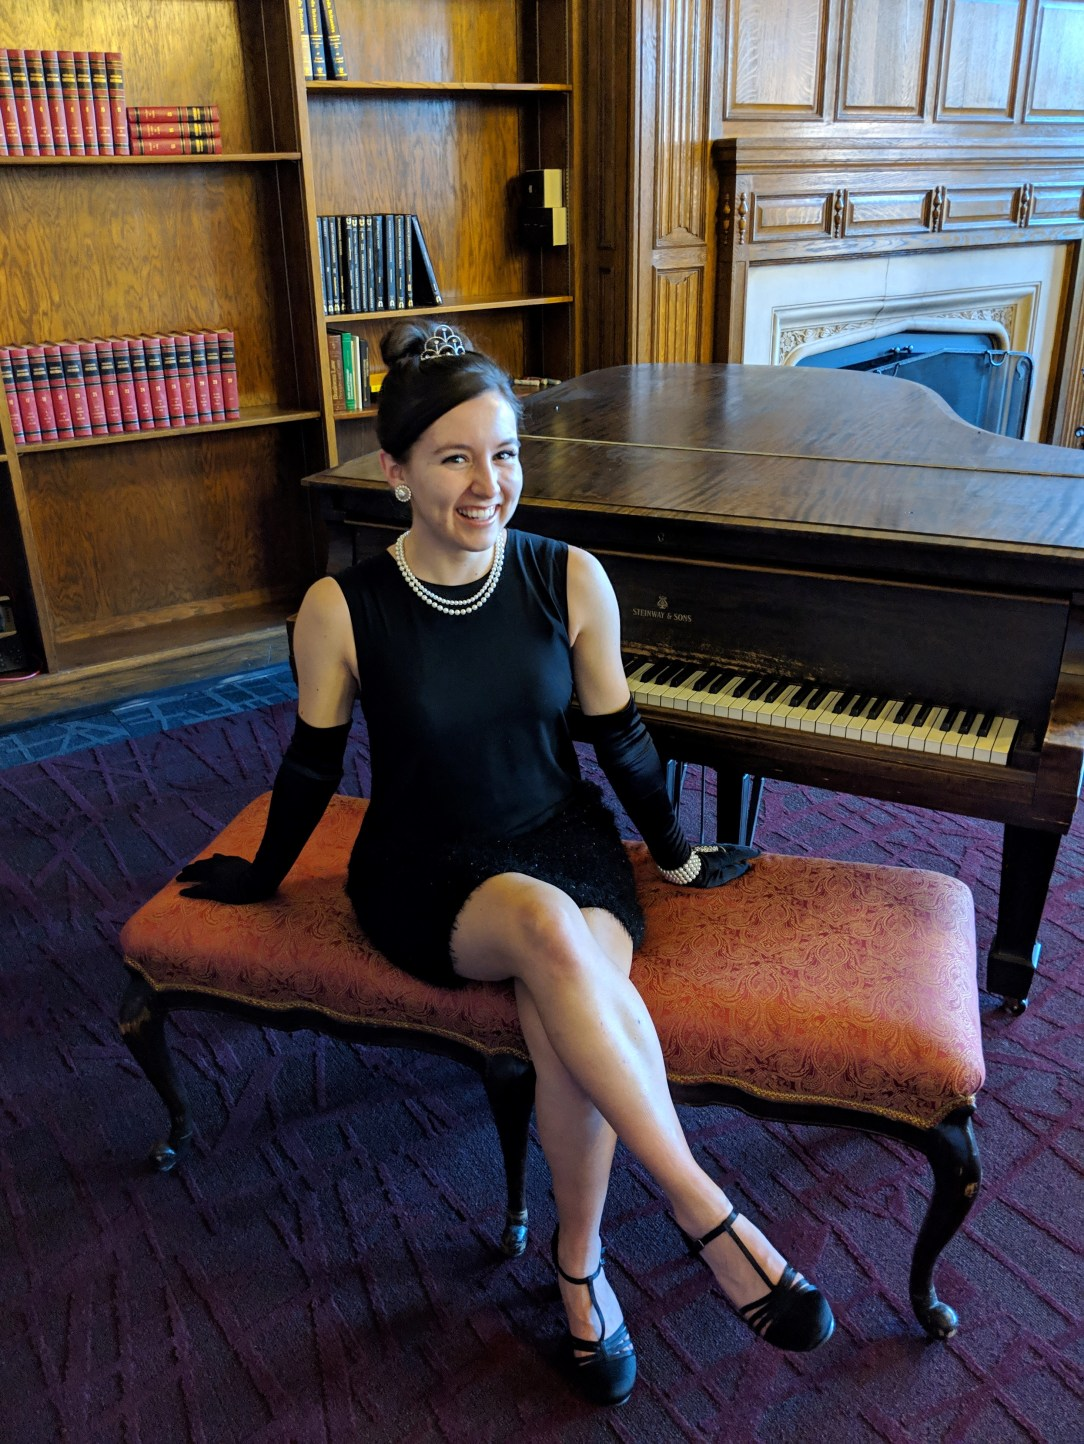 Fancy black dress and a girl sitting at a piano